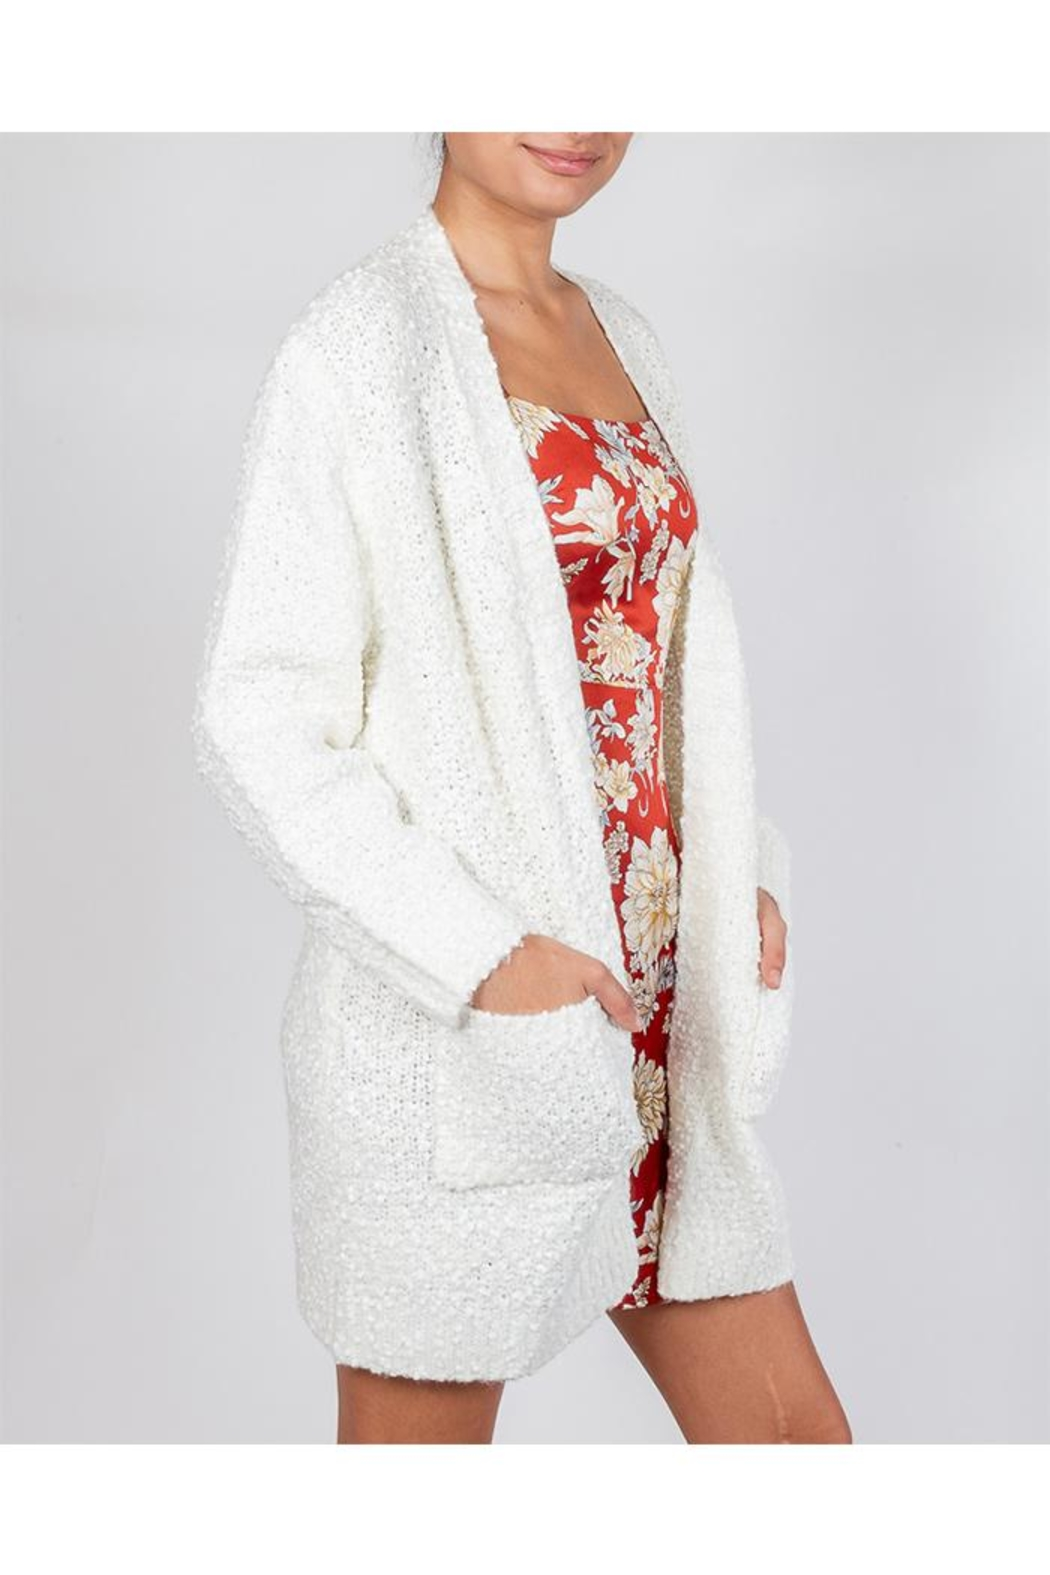 Cotton Candy Snowball White Cardigan - Side Cropped Image